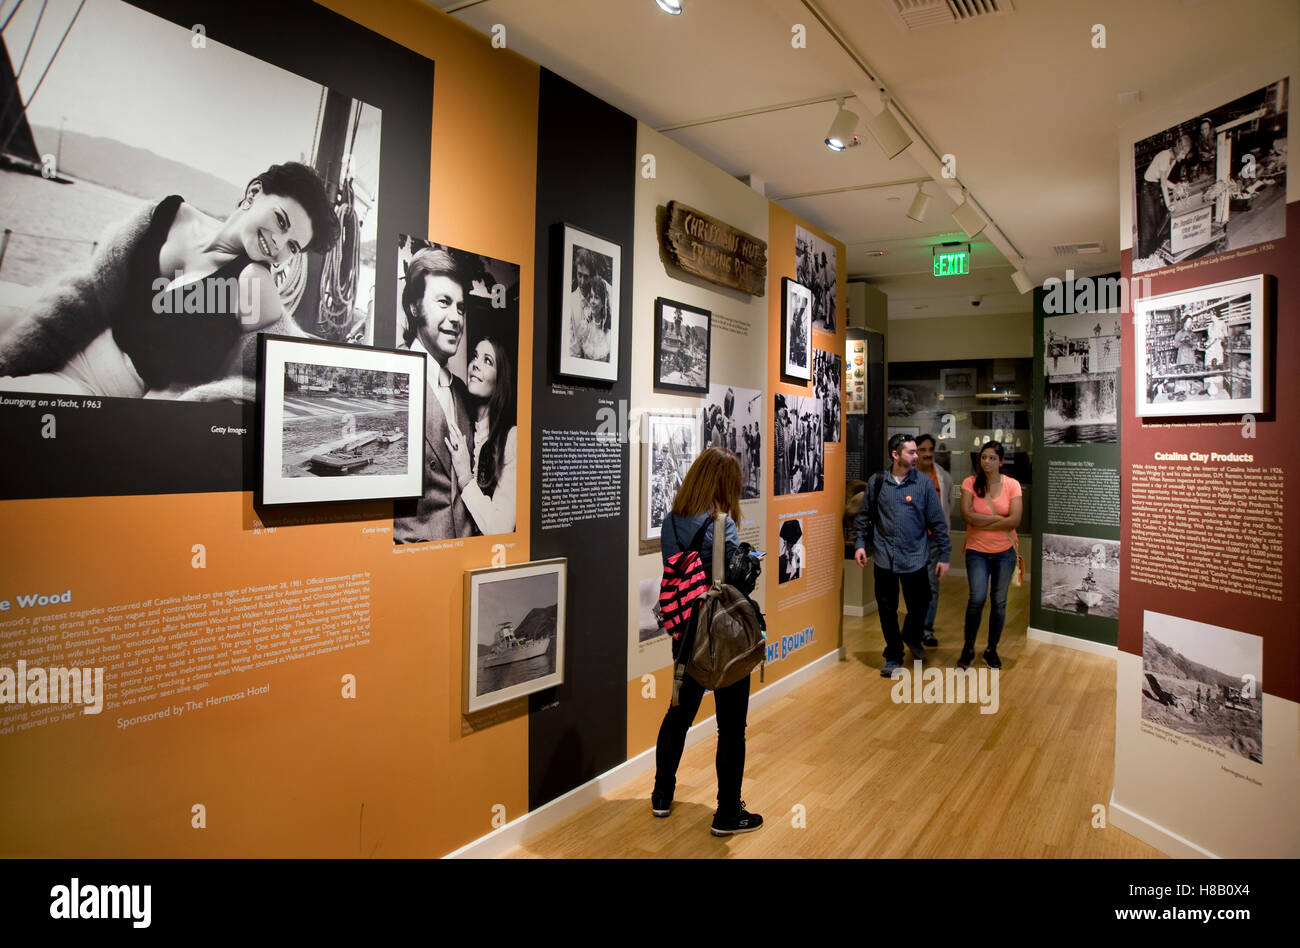 Display concerning the mysterious death of actress Natalie Wood at the Catalina Island Museum - Stock Image